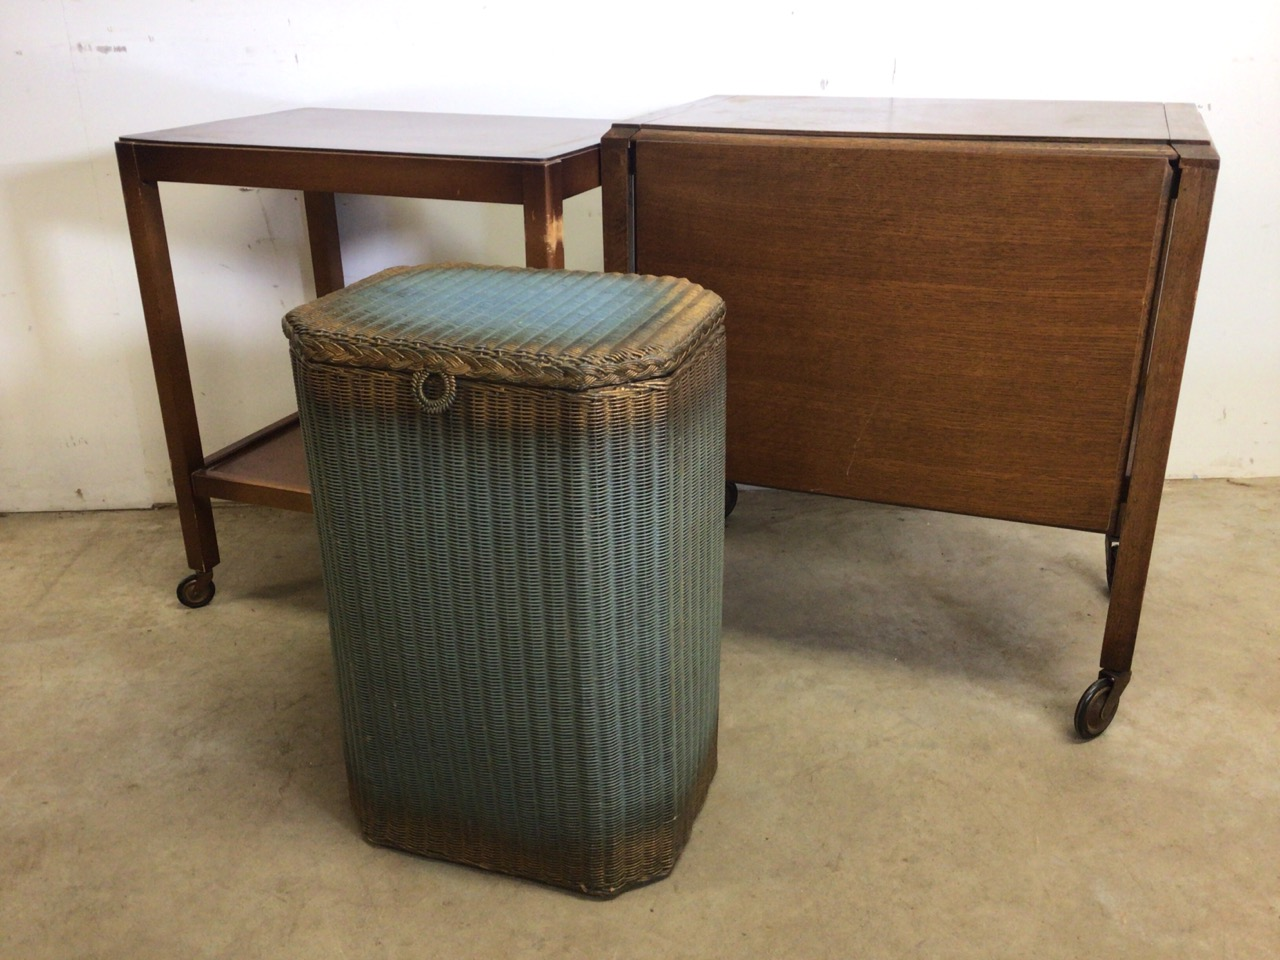 Lloyd loom lusty laundry basket also with two mid century tea trolleys one with folding drop flap